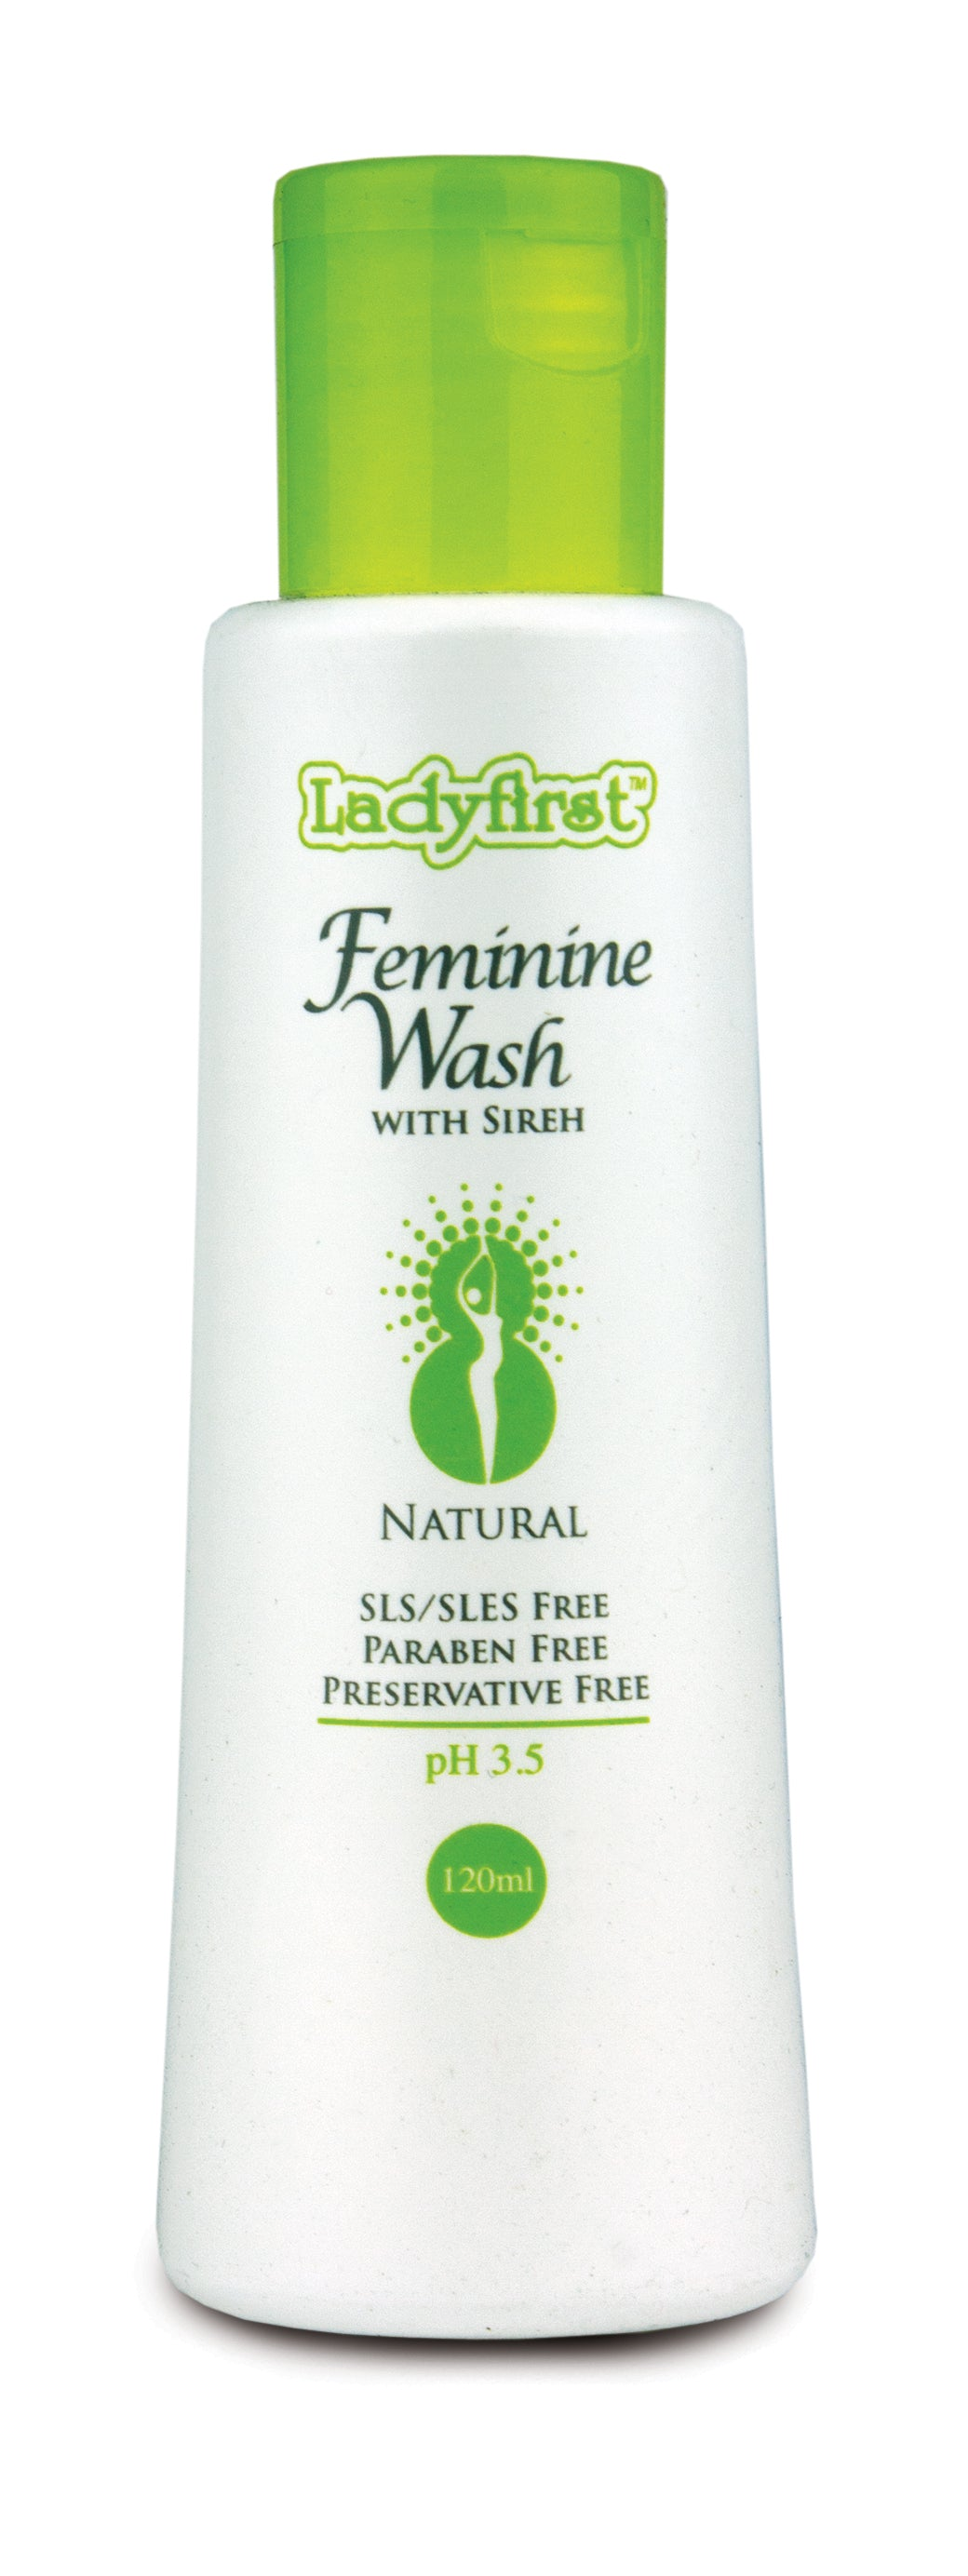 Ladyfirst Feminine Wash Natural